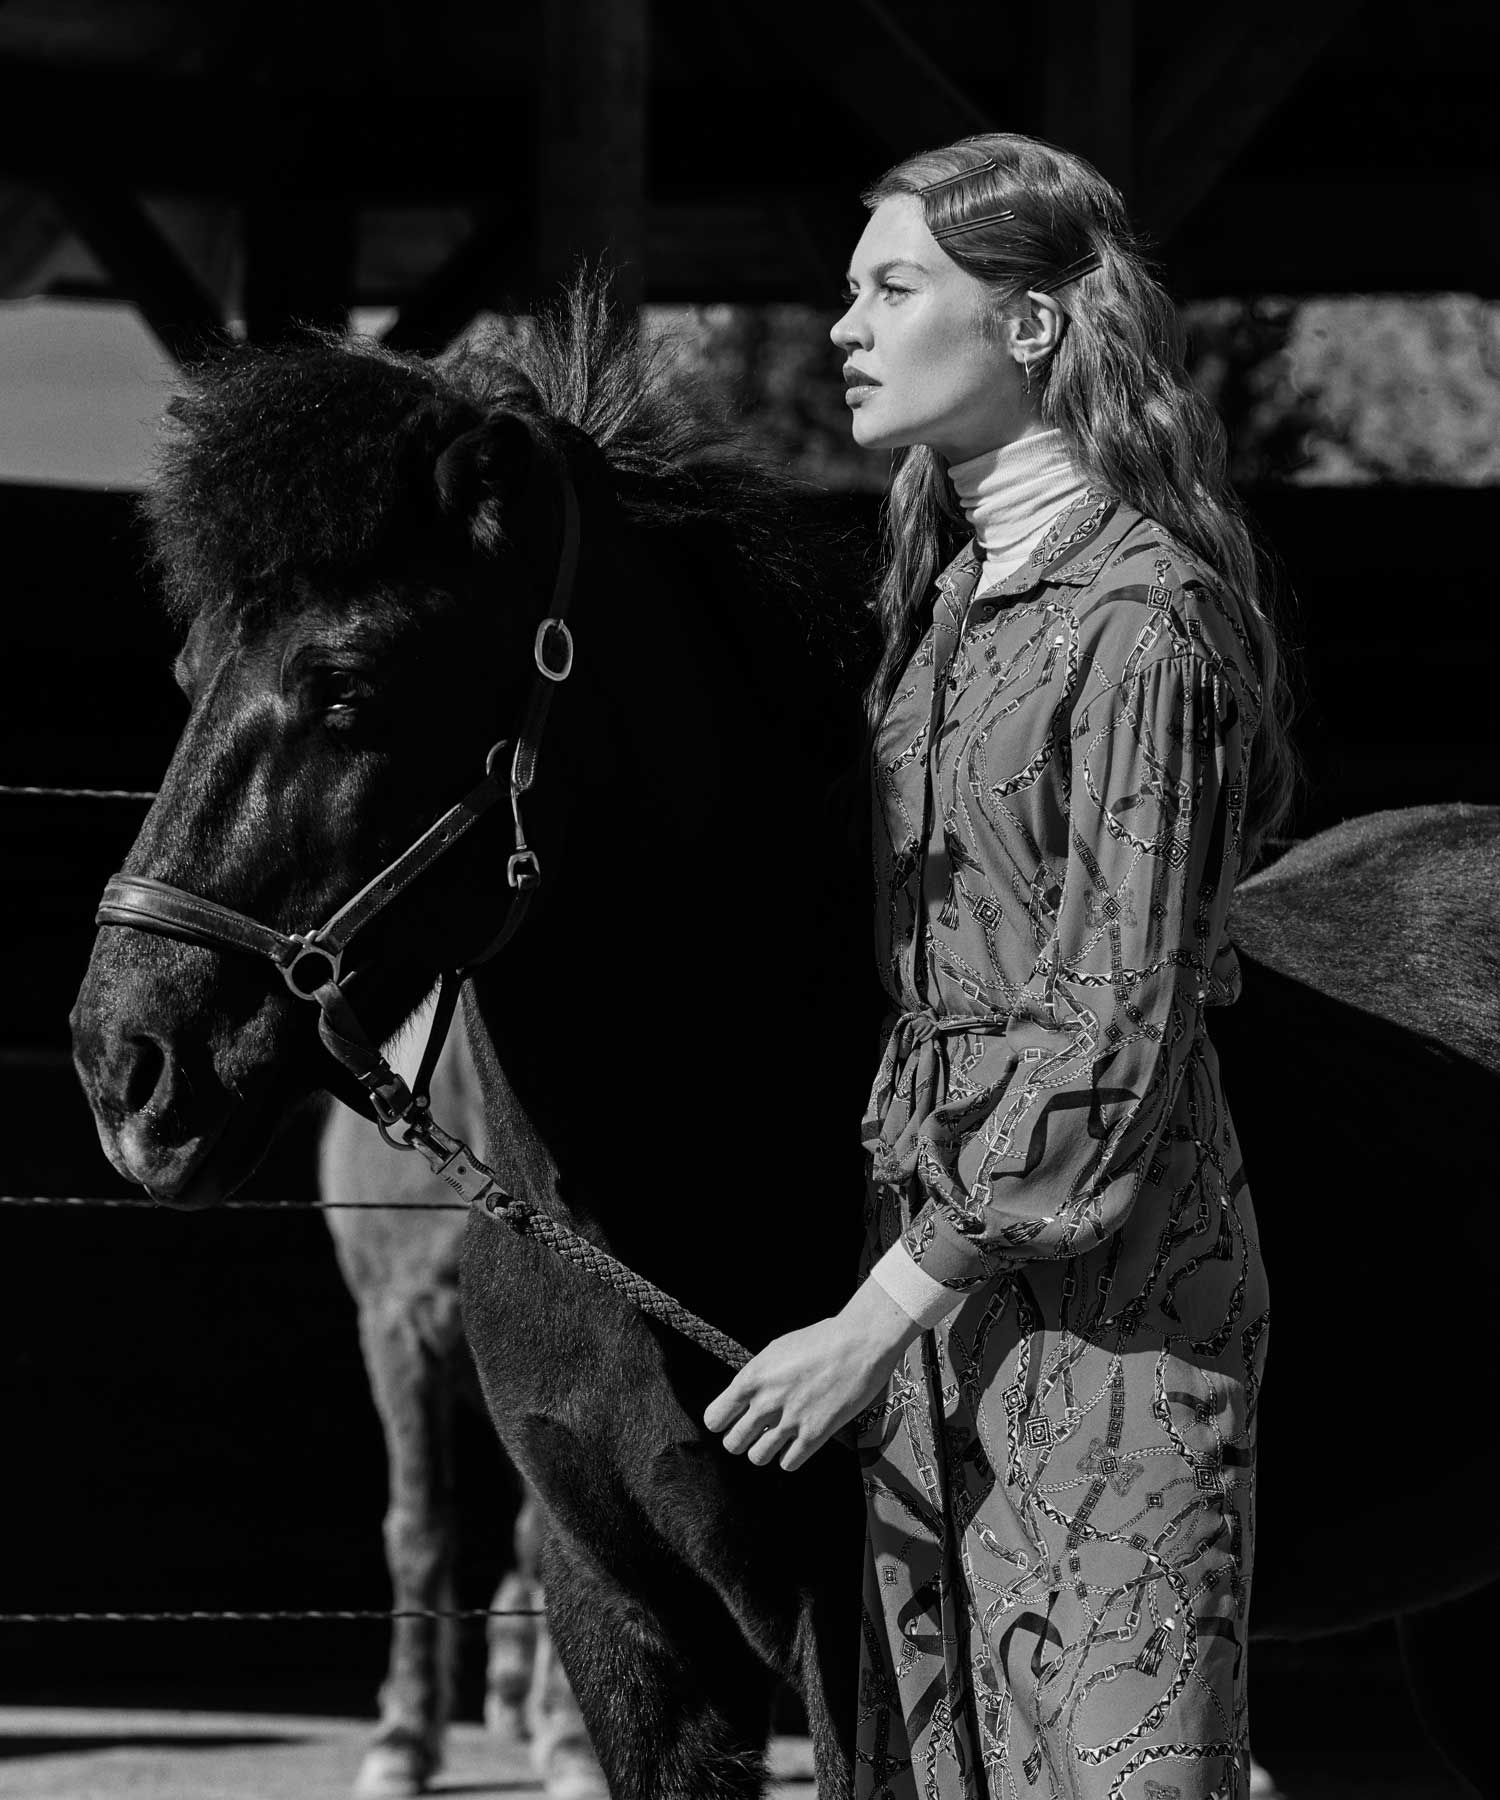 astrid m obert photography presents riding for burdastyle   fashion, sewing, pattern, design, stylling, editorial, burdastyle, magazine, horse, riding, astridobert, photography